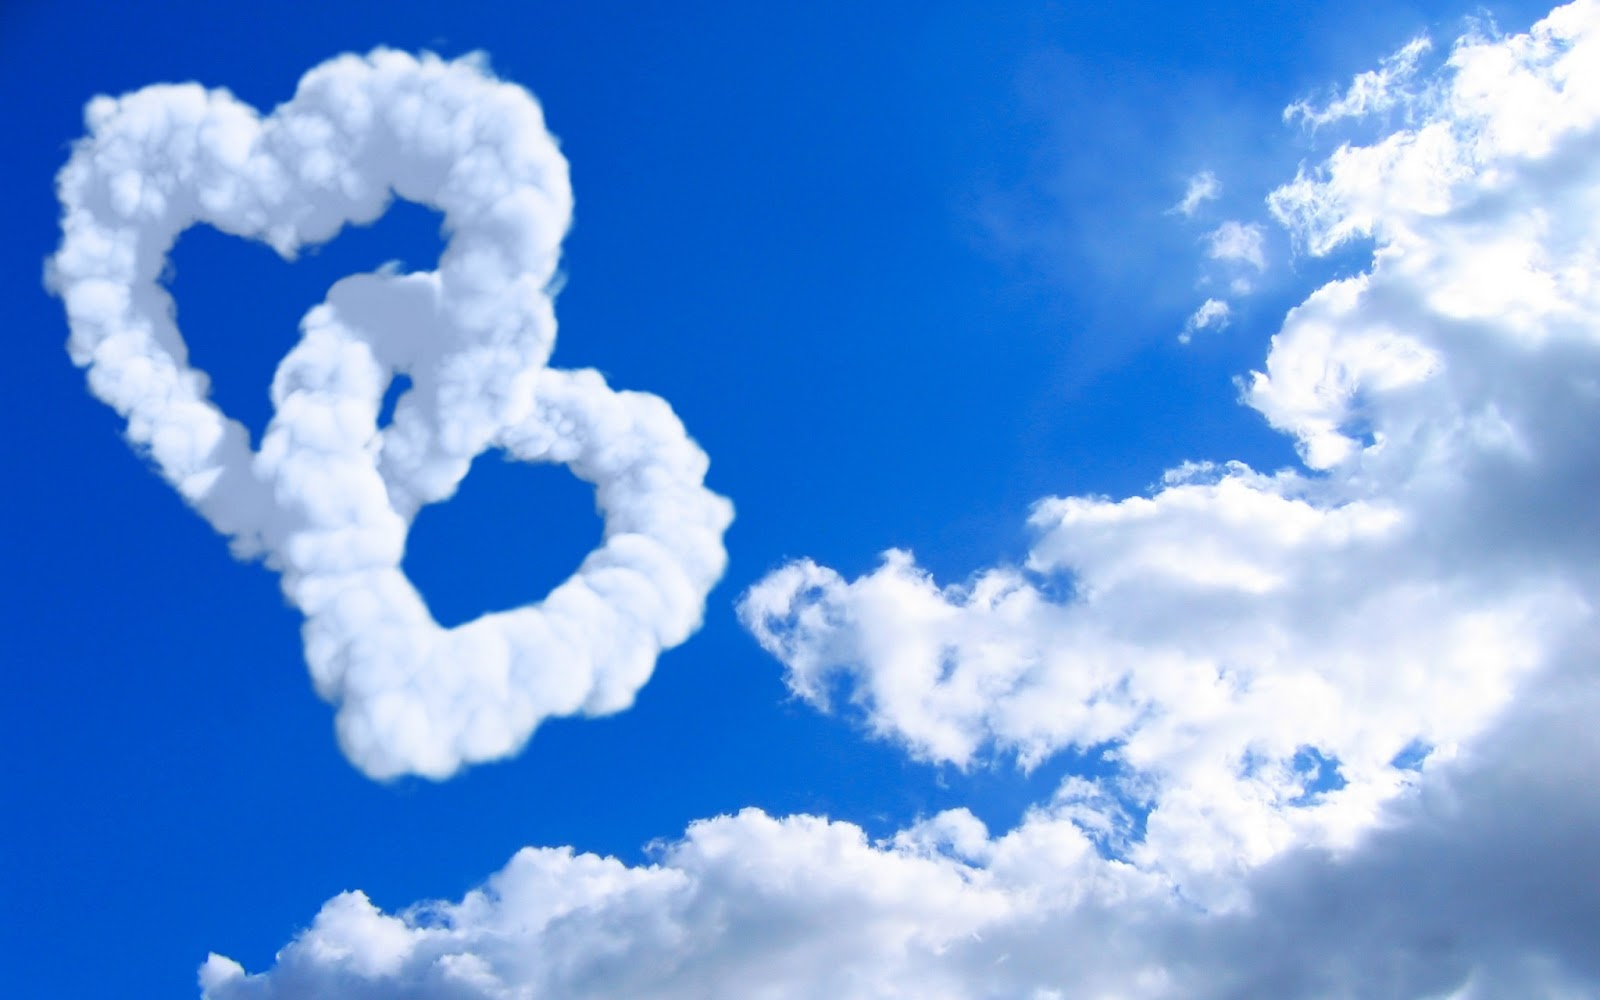 Love Desktop Wallpaper 3d : Free Wallpaper Dekstop: 3d love with clouds wallpaper, wallpaper for desktop